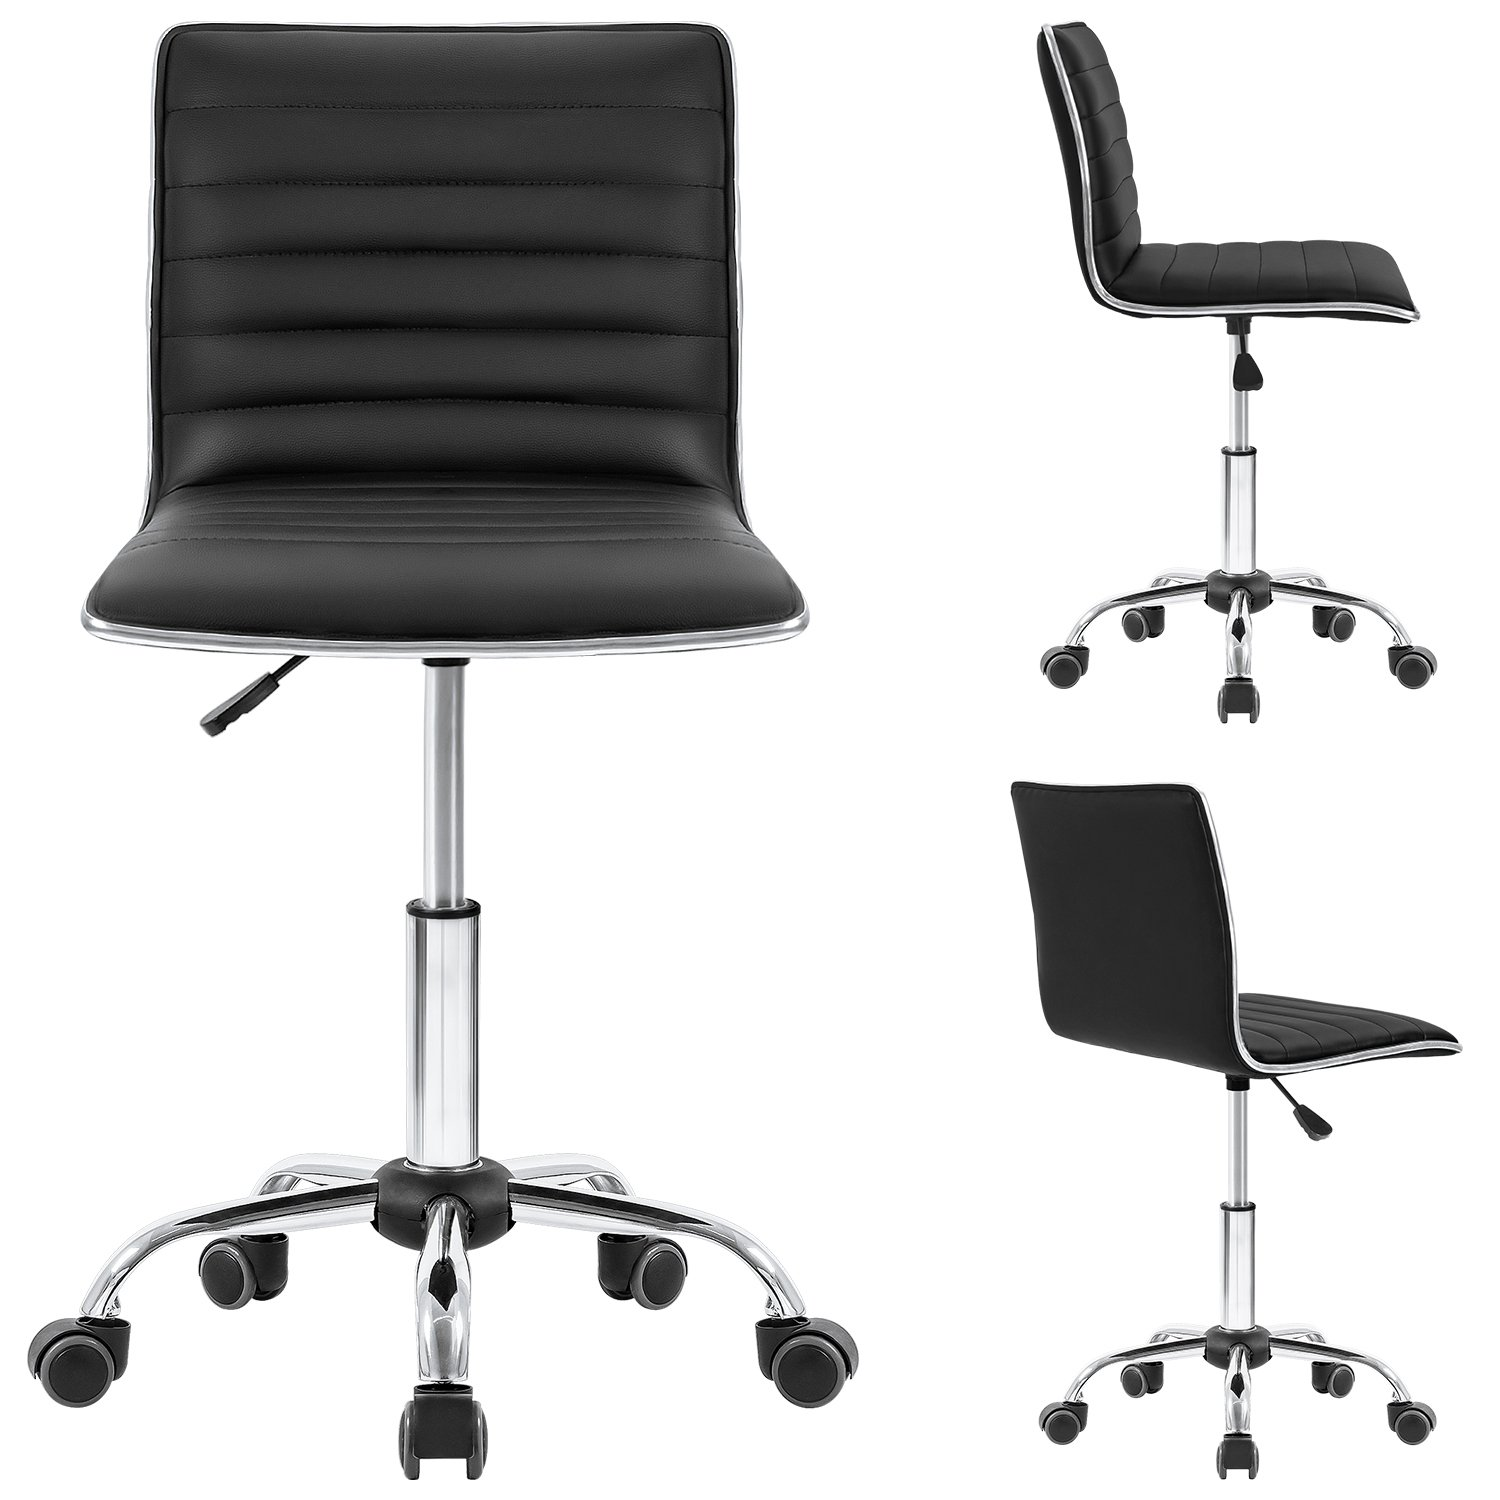 Homall Modern Adjustable Low Back Armless Ribbed Task Chair Office Chair Desk Chair, Vanity Chair Swivel Rolling Leather Computer Chairs Conference Chair Black